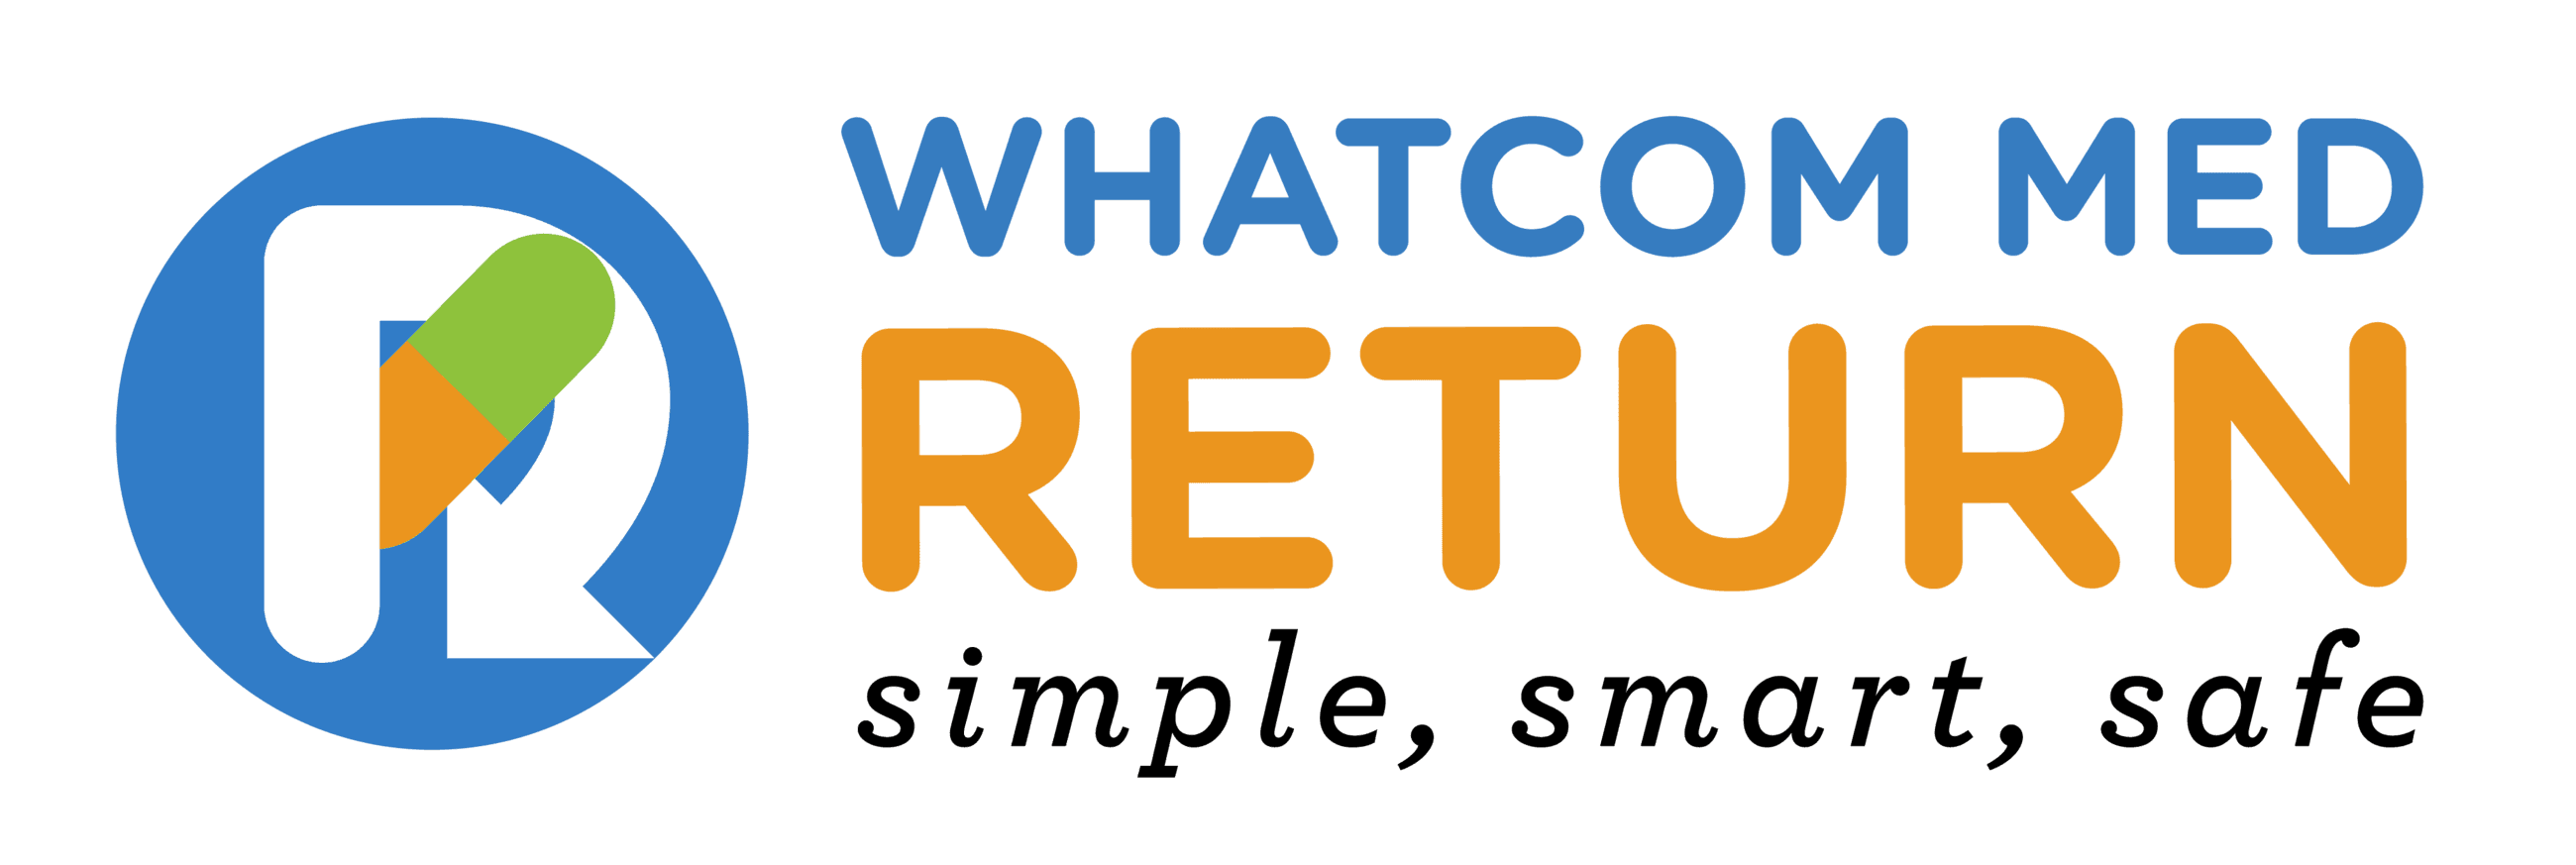 Whatcom Med Return logo